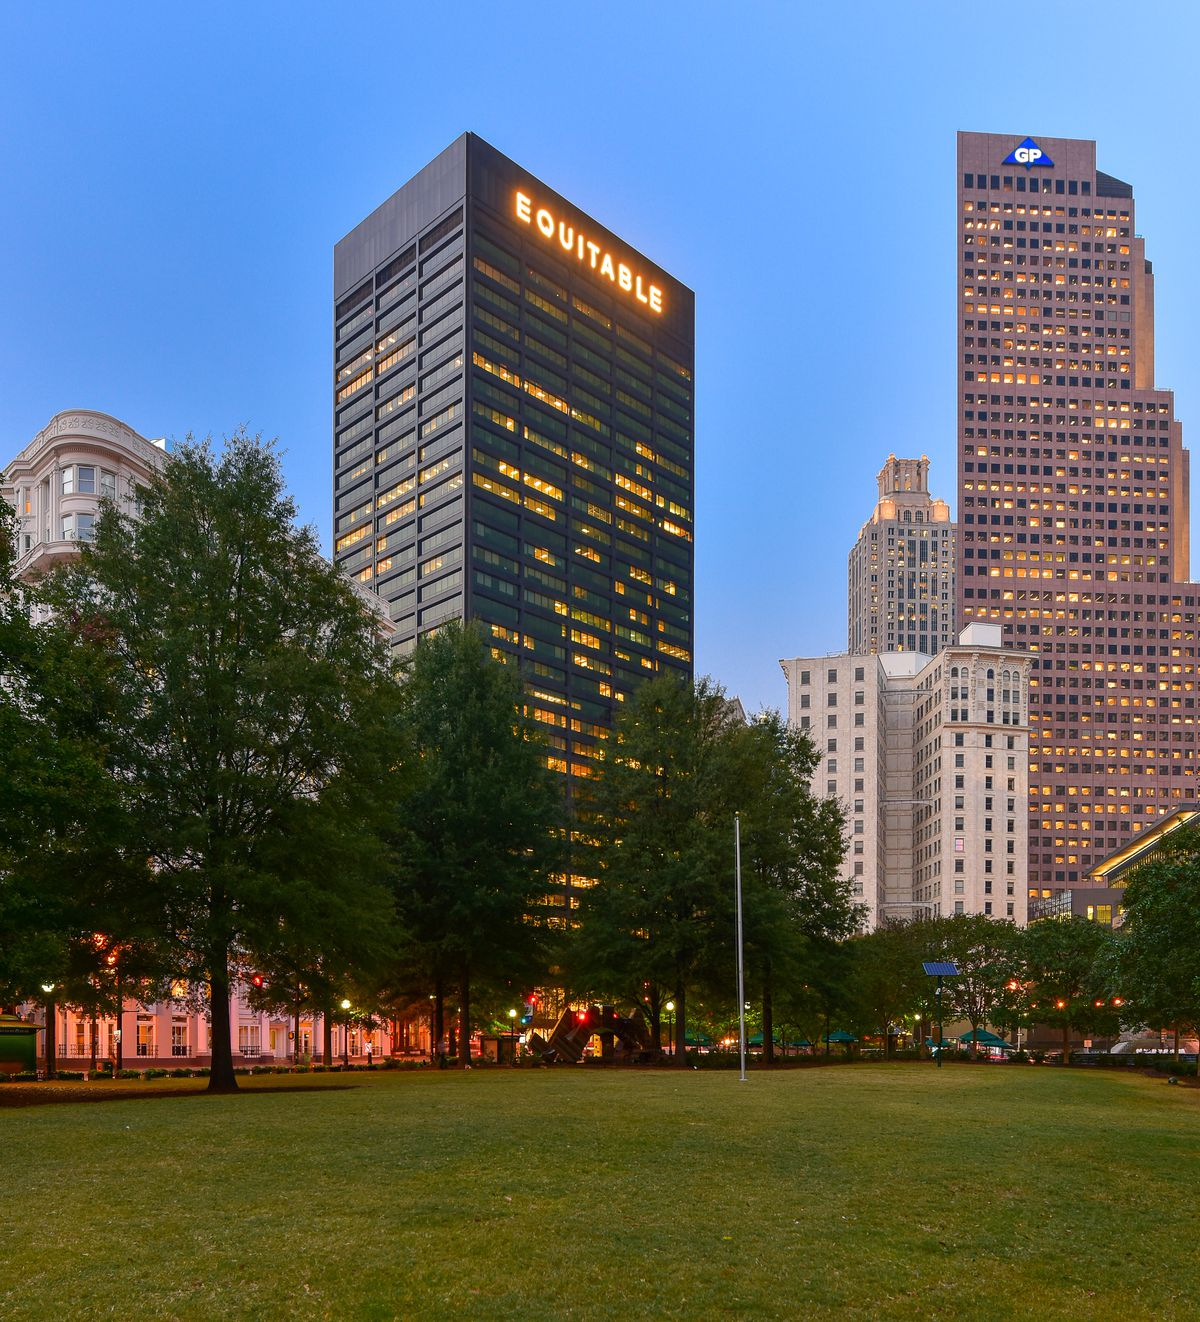 A photo of Woodruff Park and the Equitable Building in downtown Atlanta.